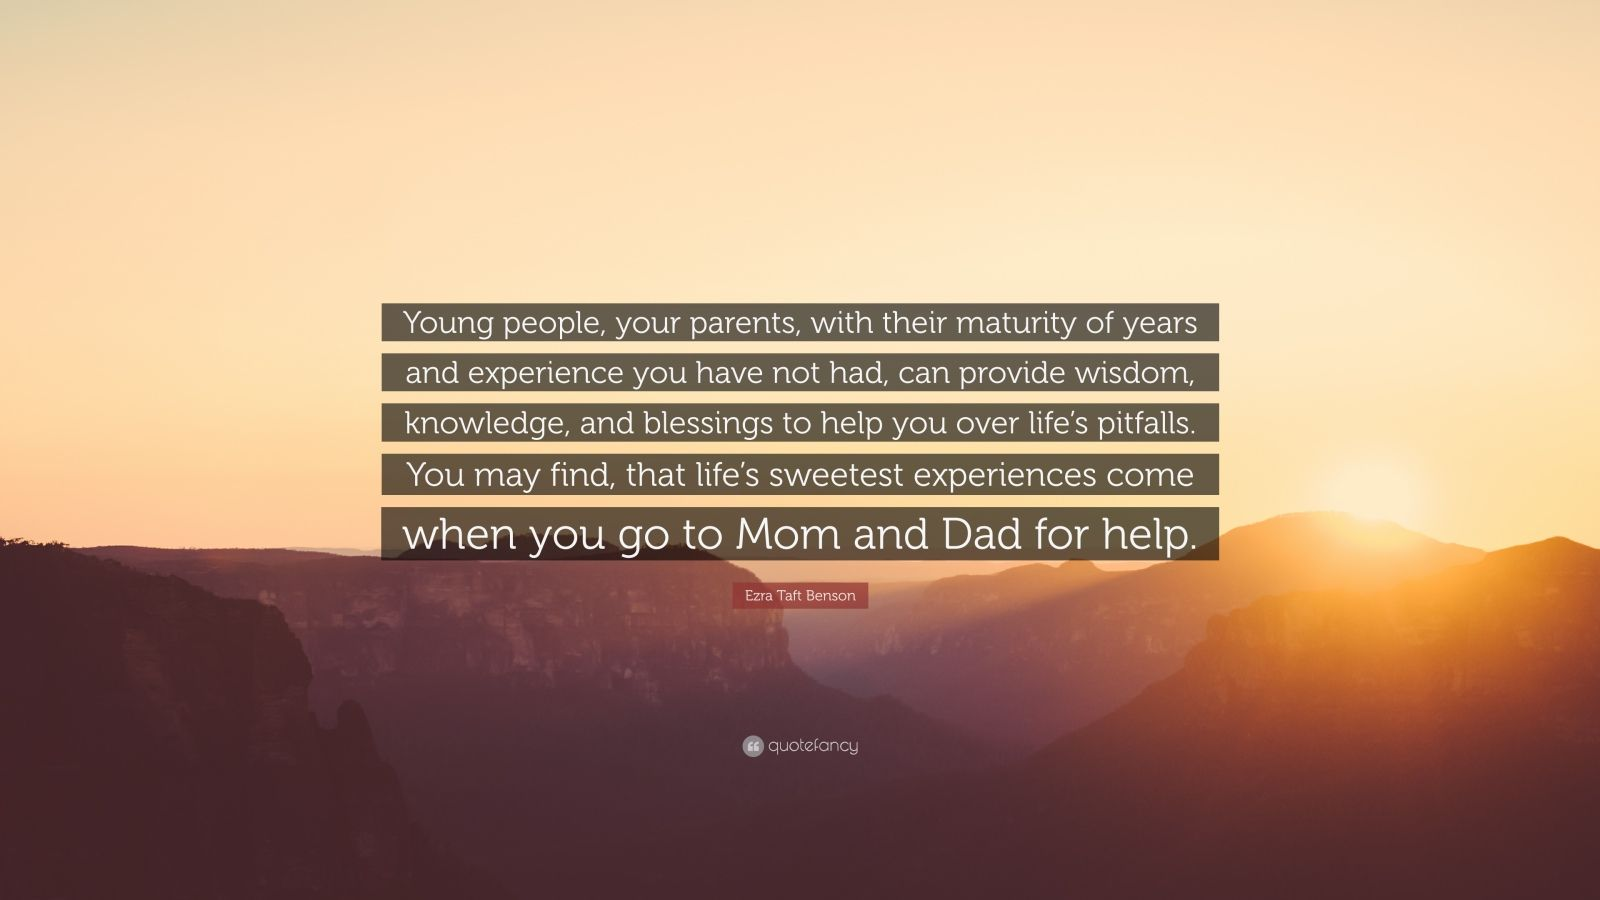 "Ezra Taft Benson Quote: ""Young people, your parents, with their maturity of years and experience you have not had, can provide wisdom, knowledge, and blessings to help you over life's pitfalls. You may find, that life's sweetest experiences come when you go to Mom and Dad for help."""